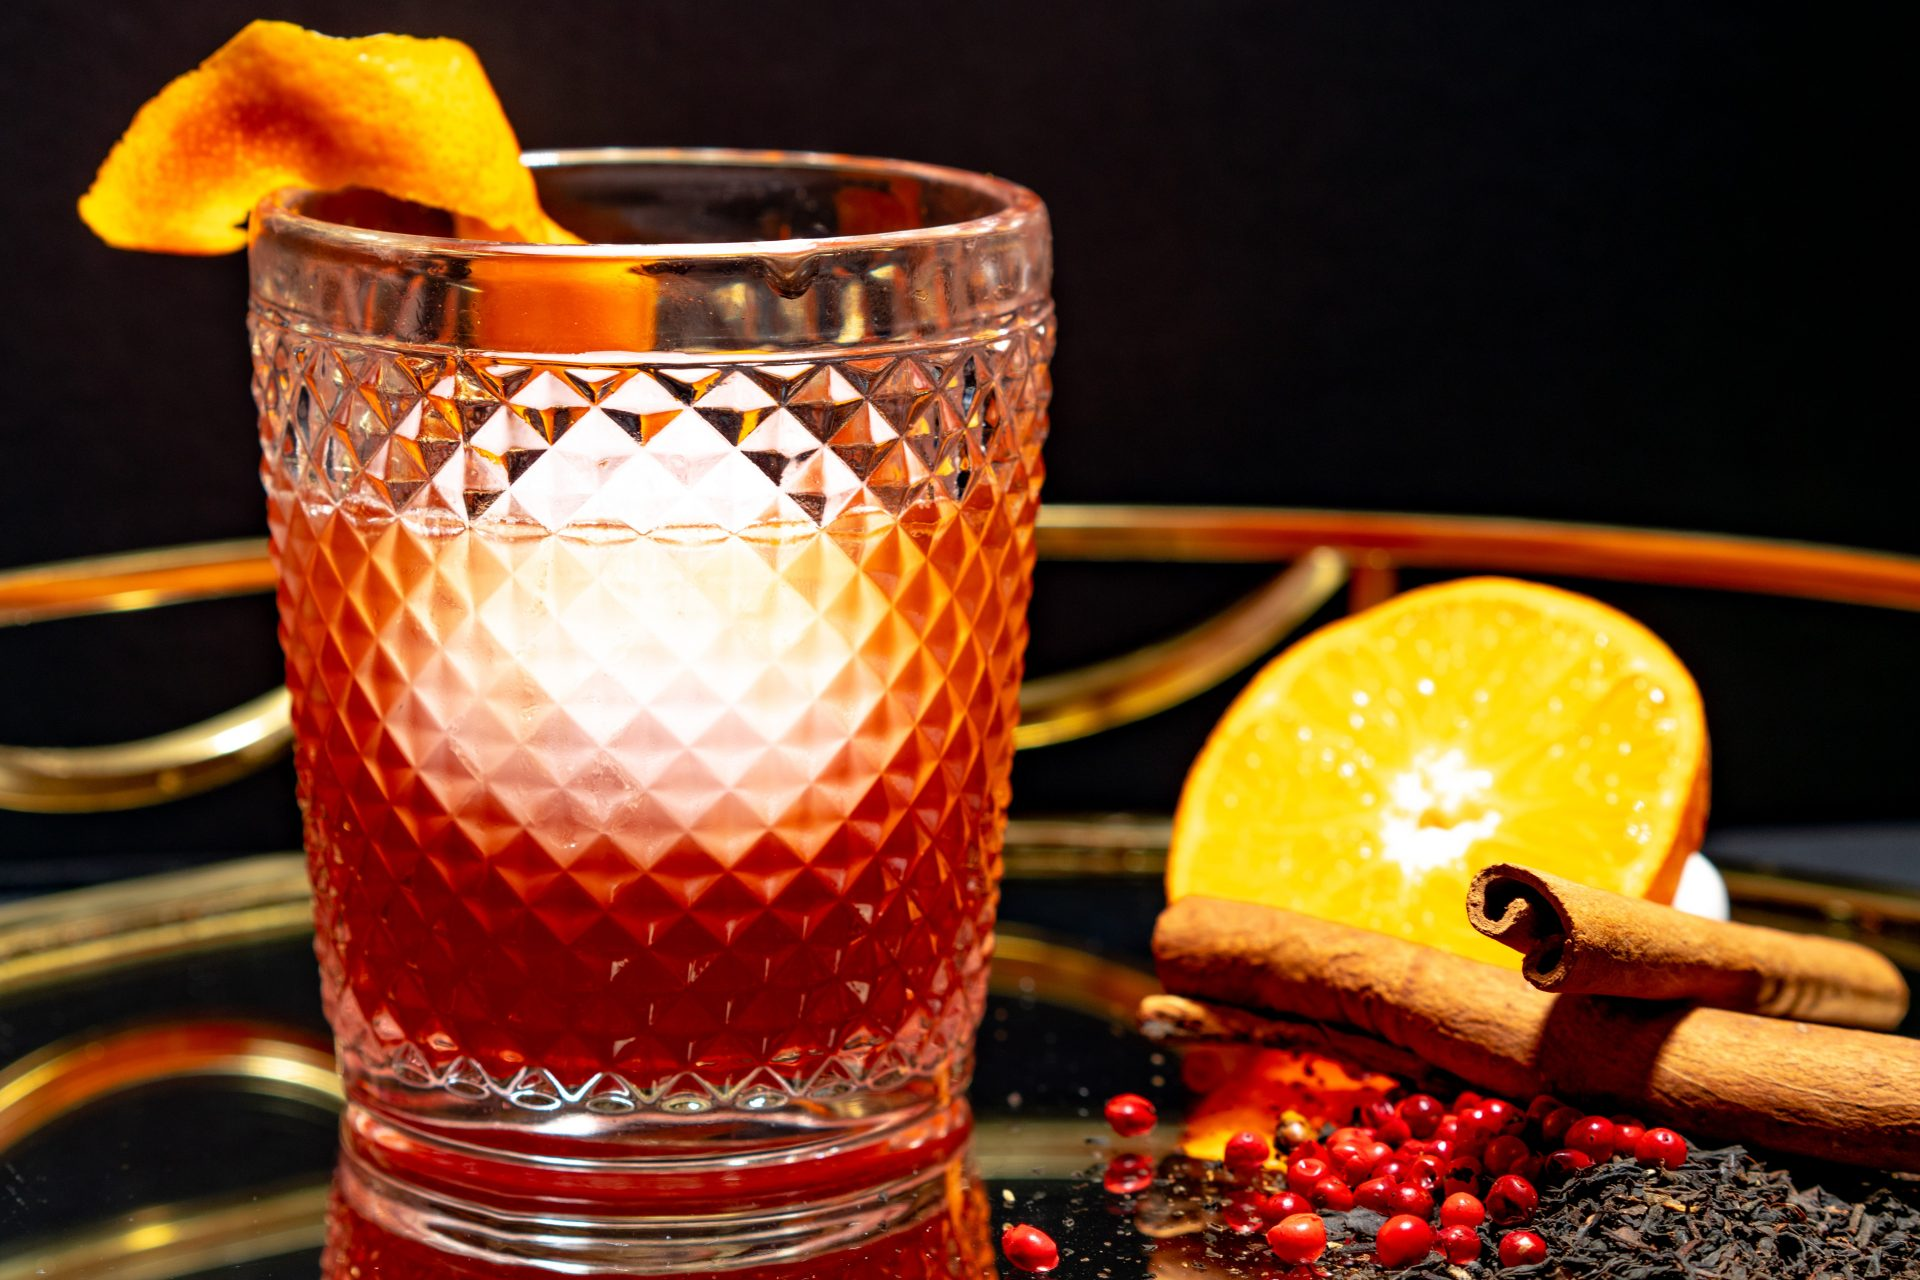 Hyperfoods Cookbook: Spiced cranberry and orange cocktail